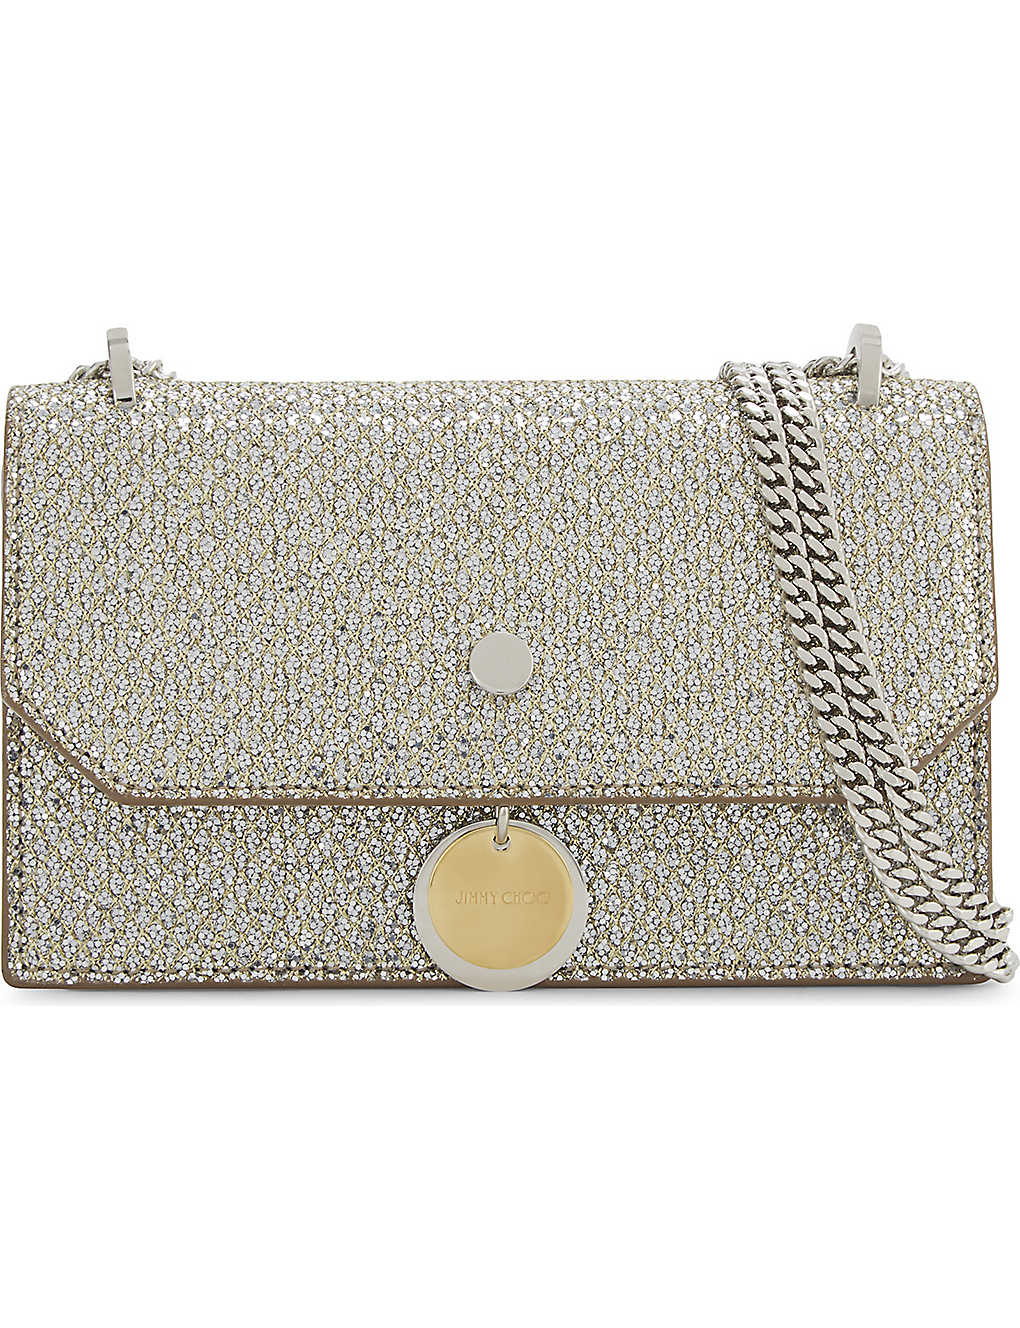 f07c5de77a JIMMY CHOO - Finley glitter cross-body bag | Selfridges.com